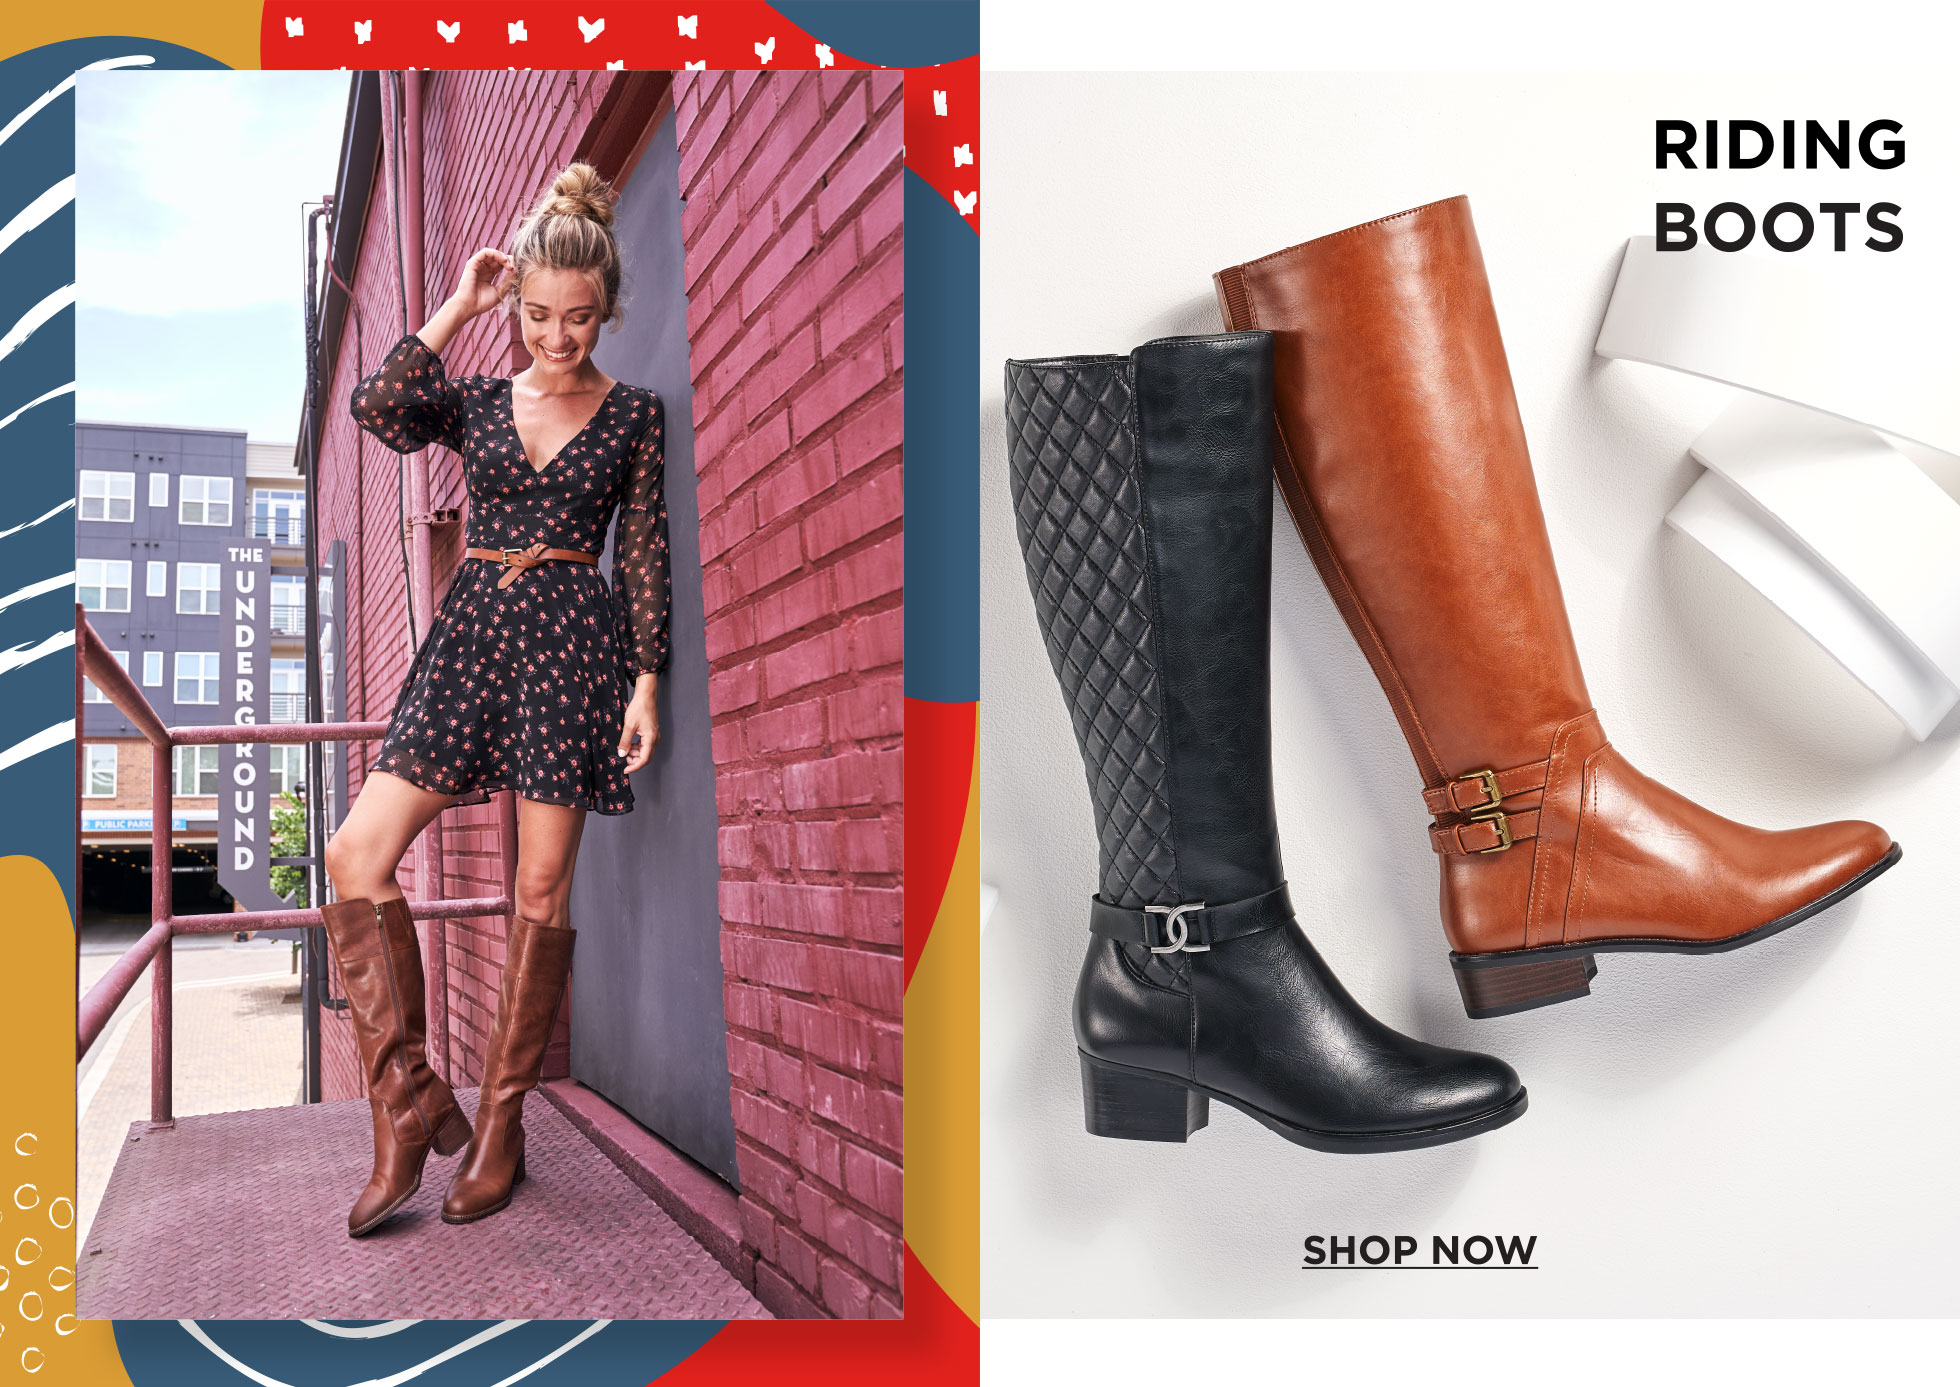 Xappeal riding Boots: Shop Now